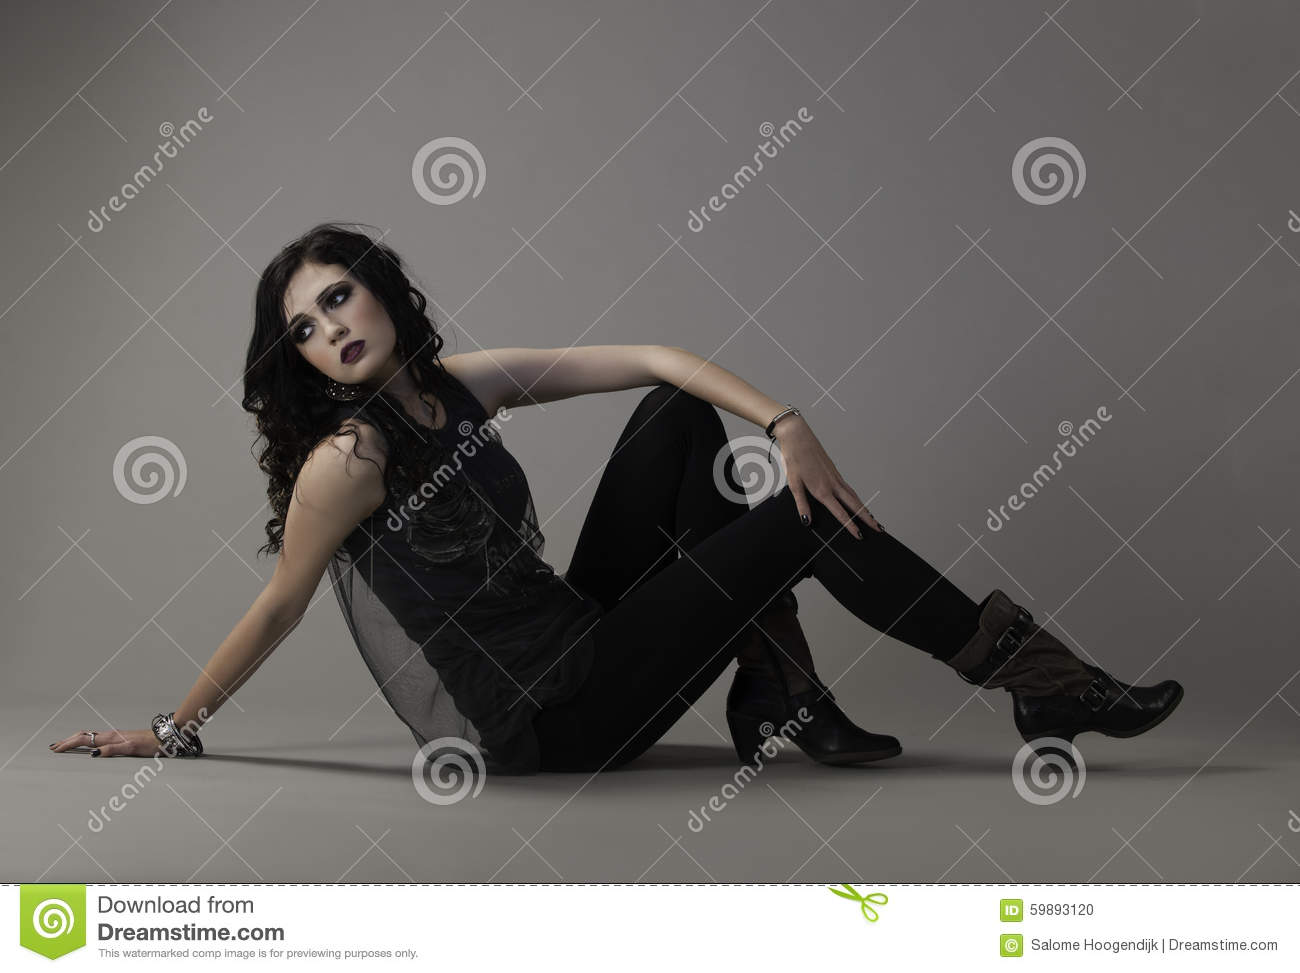 Portrait in color of a beautiful dark haired woman, wearing dramatic dark makeup with edgy clothing and boots, seated on the ground while looking back over ...